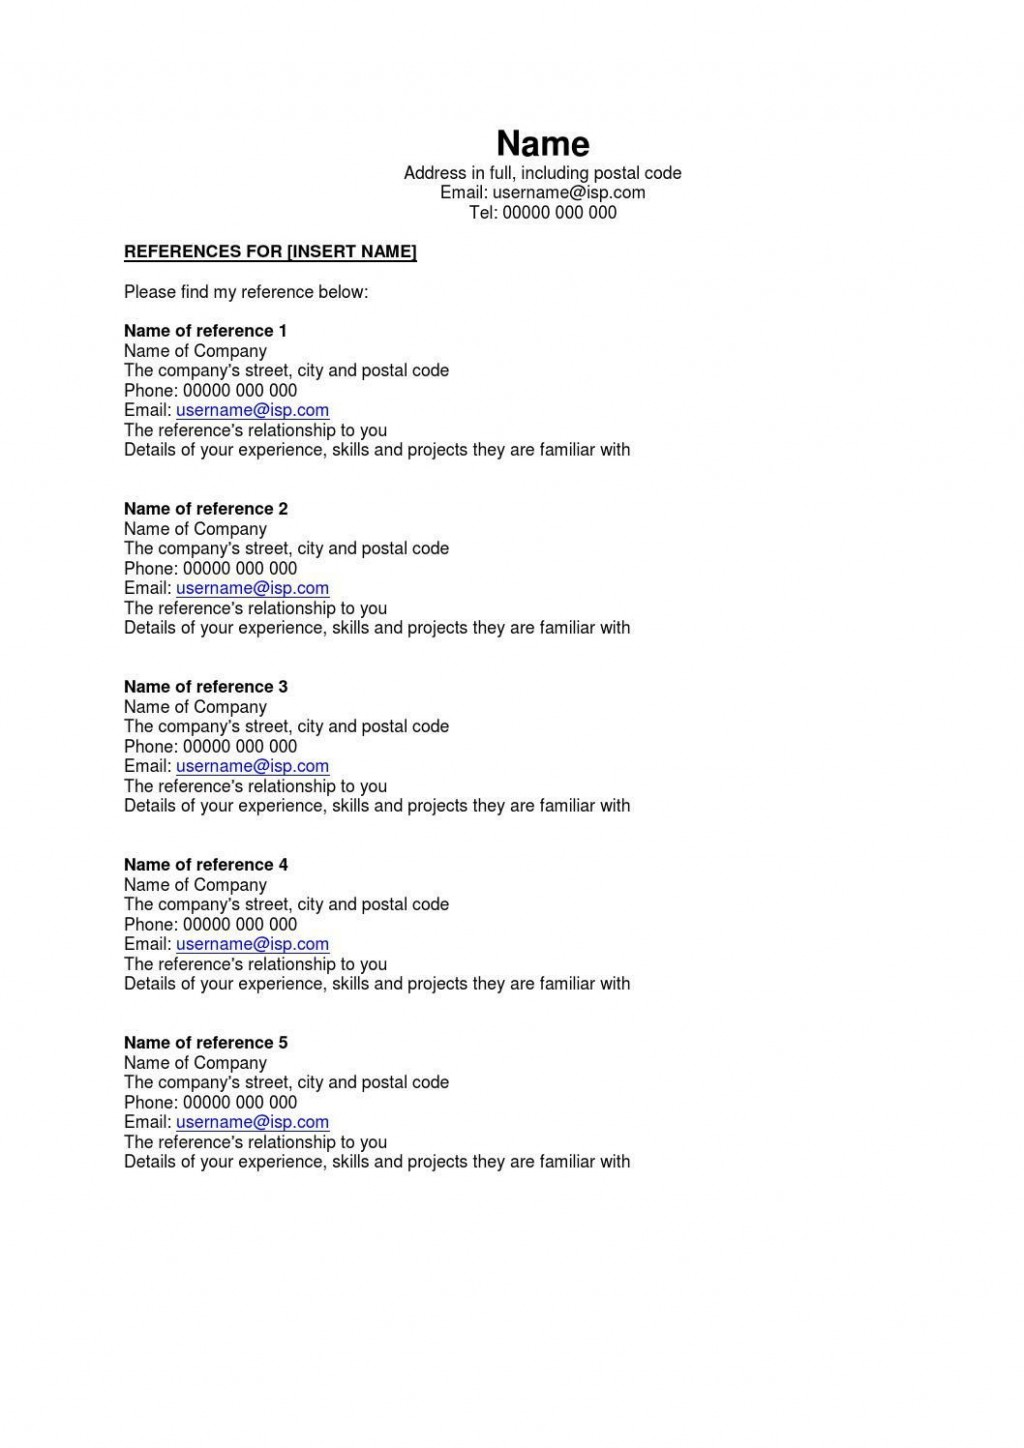 002 Astounding Resume Reference List Template Microsoft Word High Resolution Large